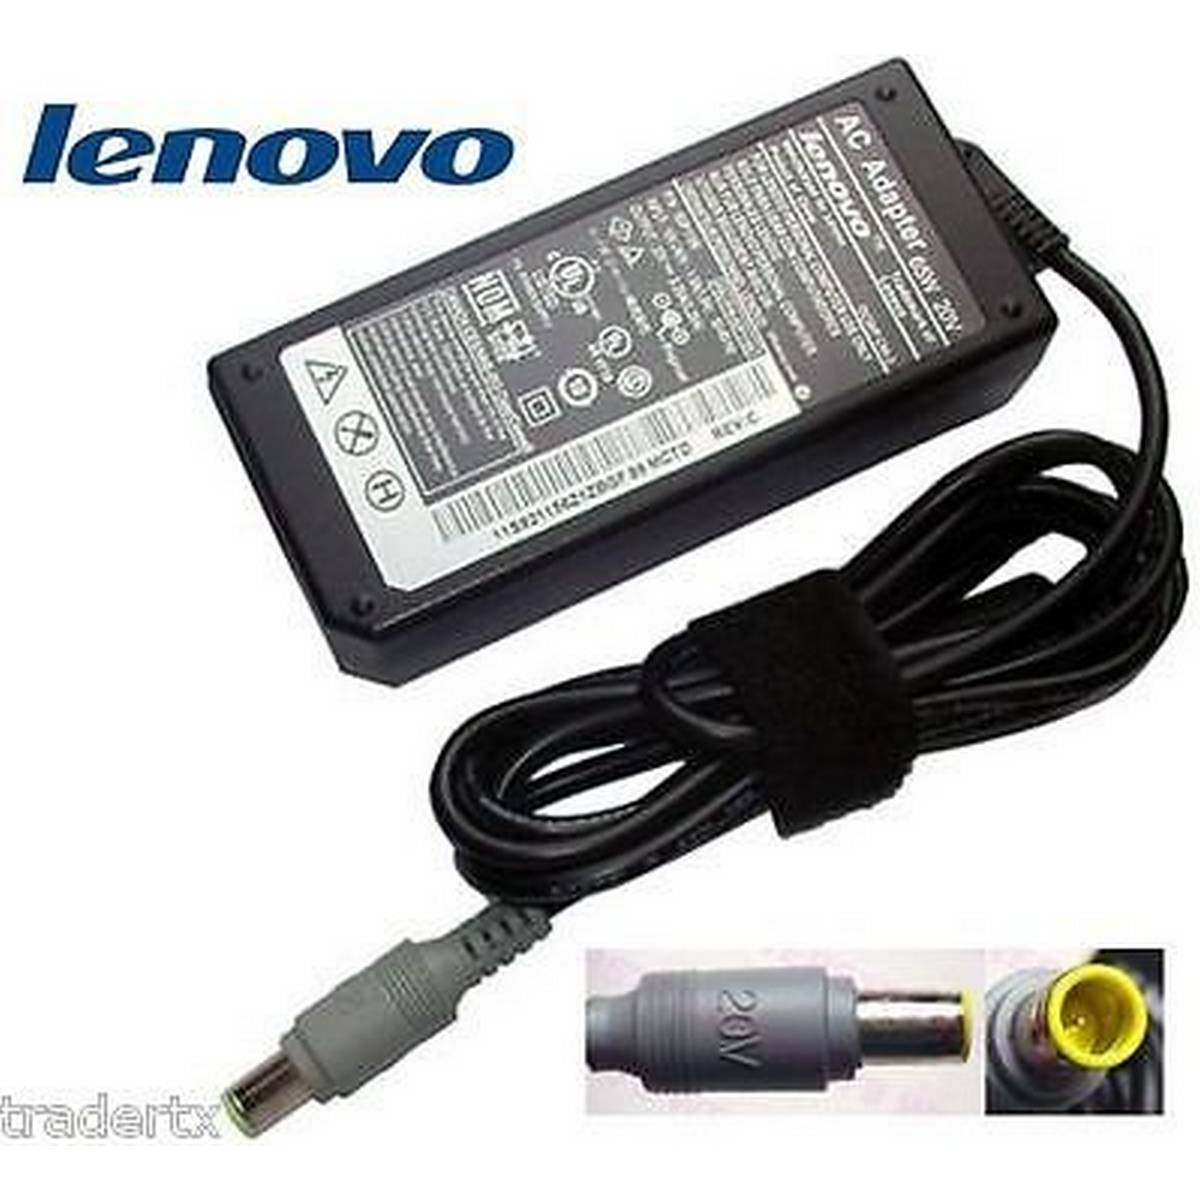 Genuine LENOVO Round pin 3.25A /4.74A 20V Laptop Charger AC Adapter With Power Cable for T400 T410 T420 T430 Z50 SL300 SL400 SL500 SL510 R60 R61 X60 X61 X200 X201 X220